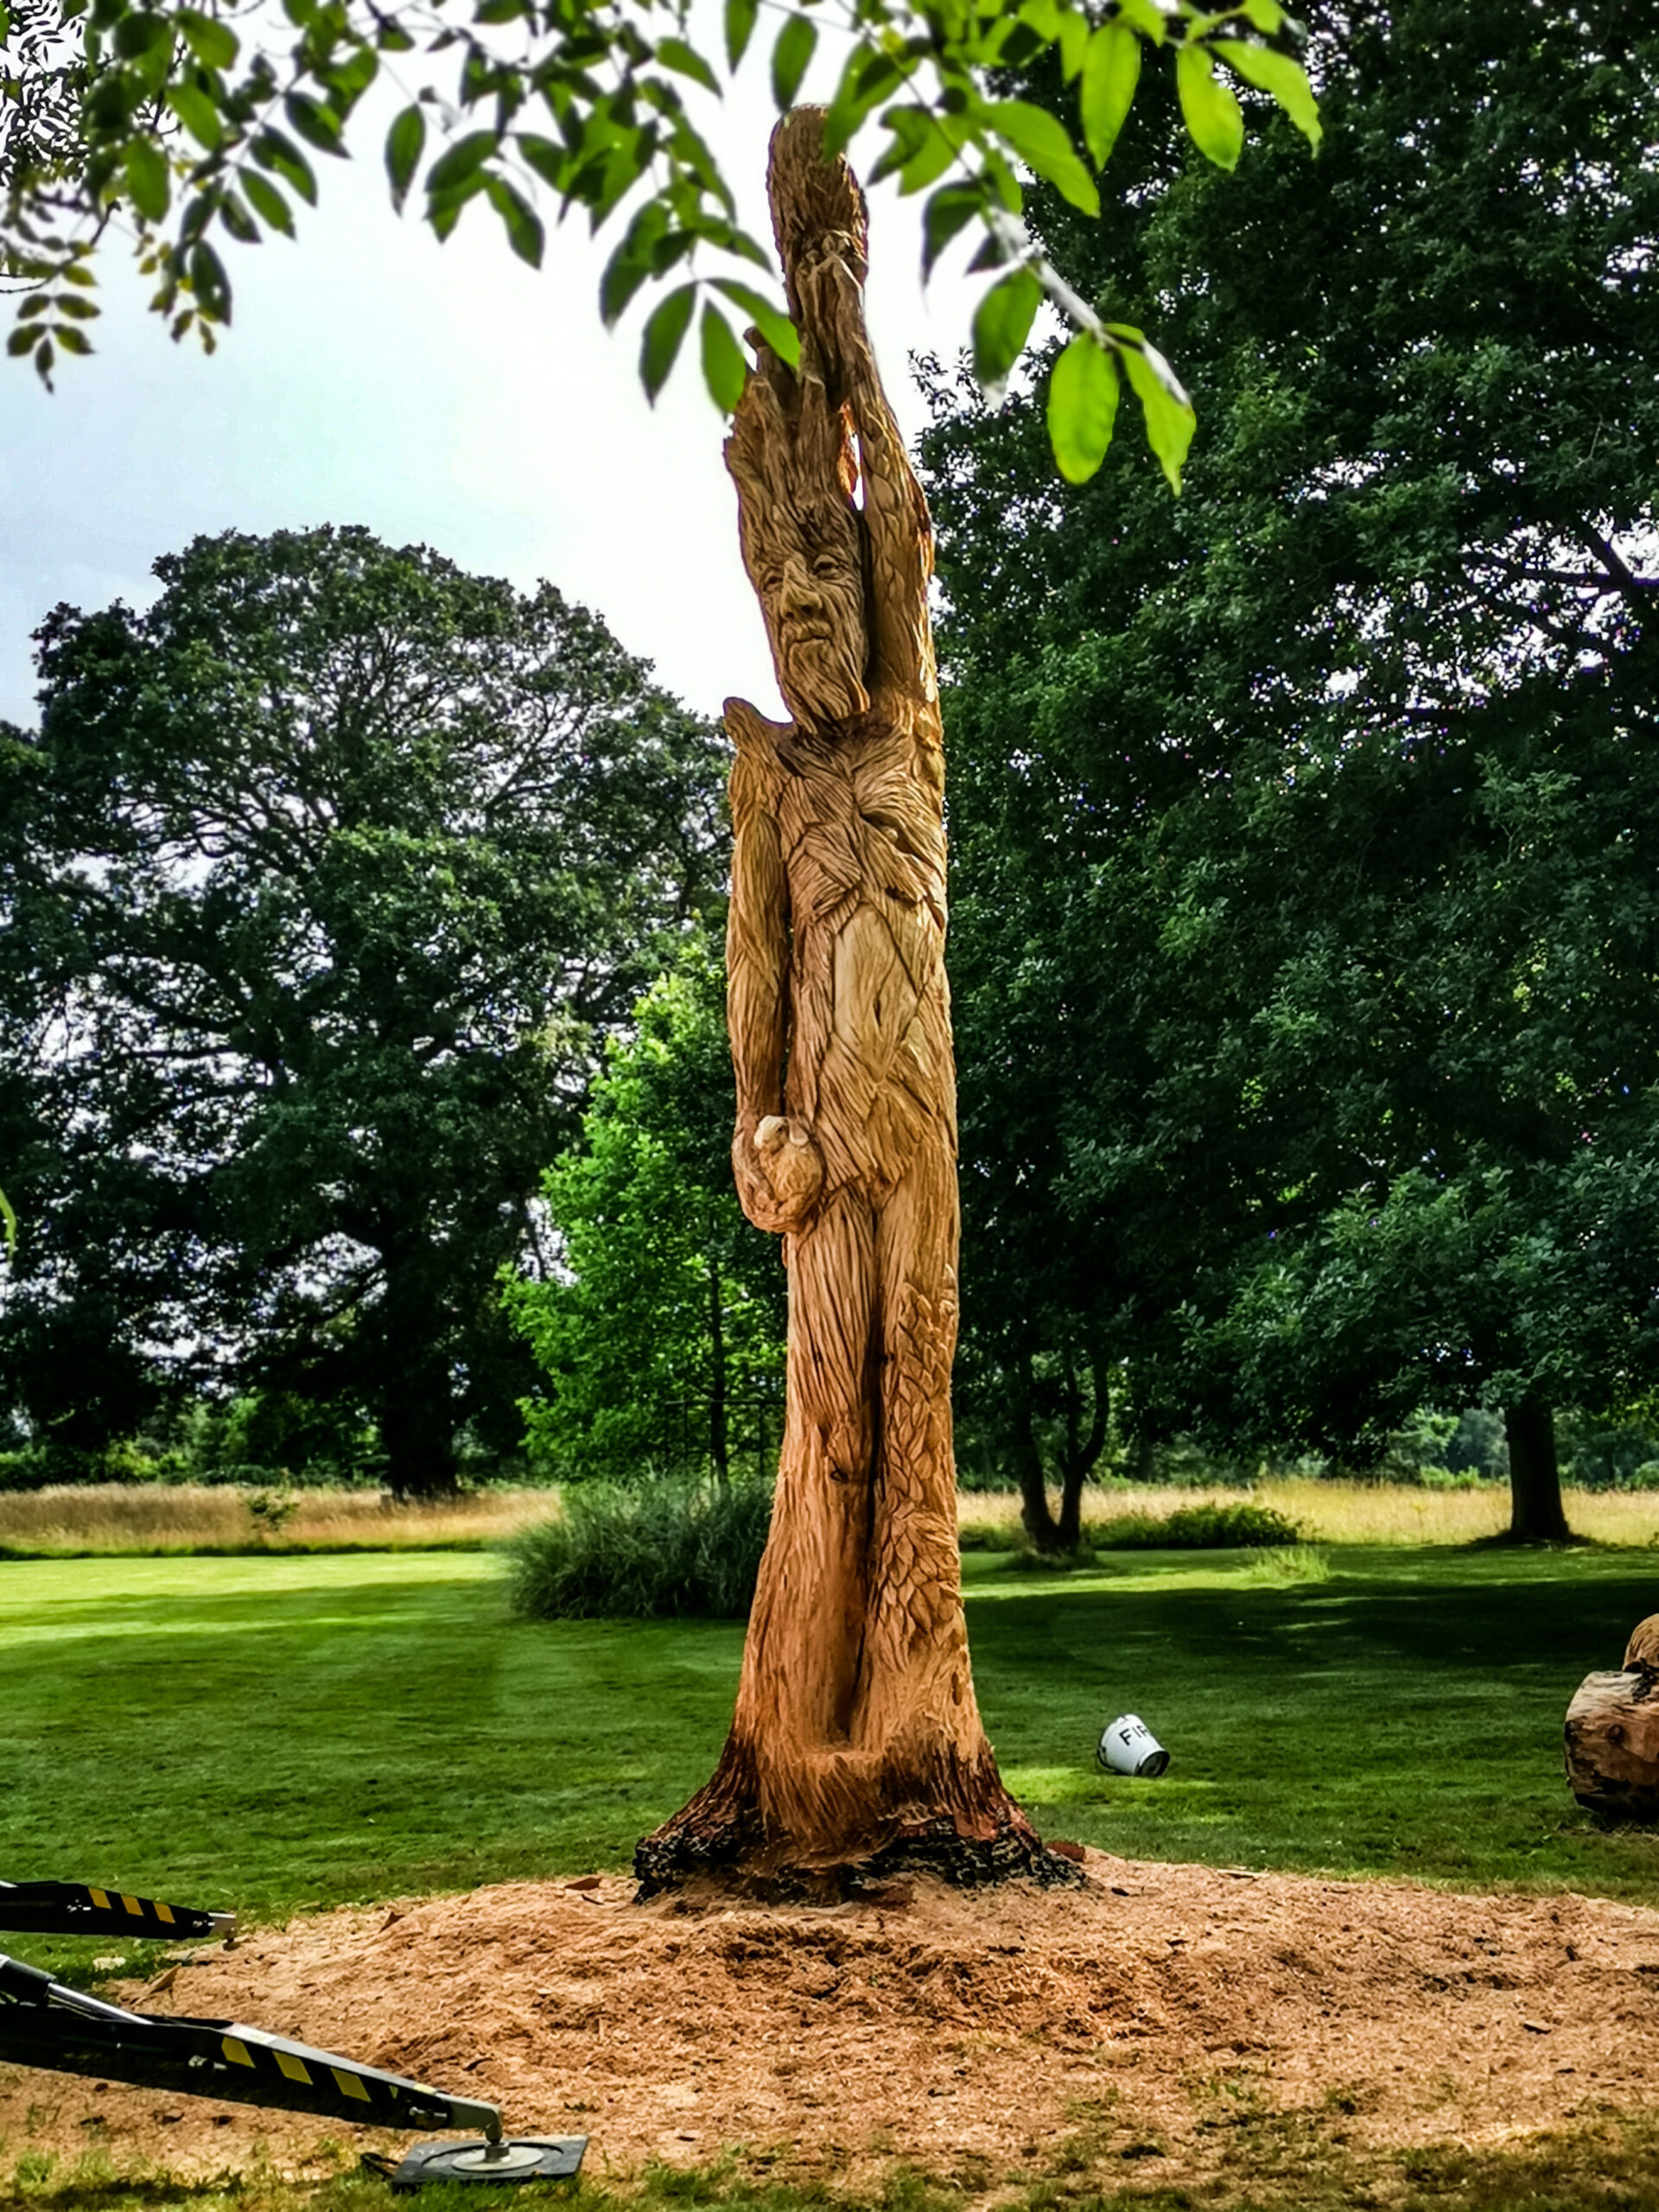 3m tall monkey puzzle tree trunk transformed into a sculpture on an ent from lord of the rings by simon o'rourke